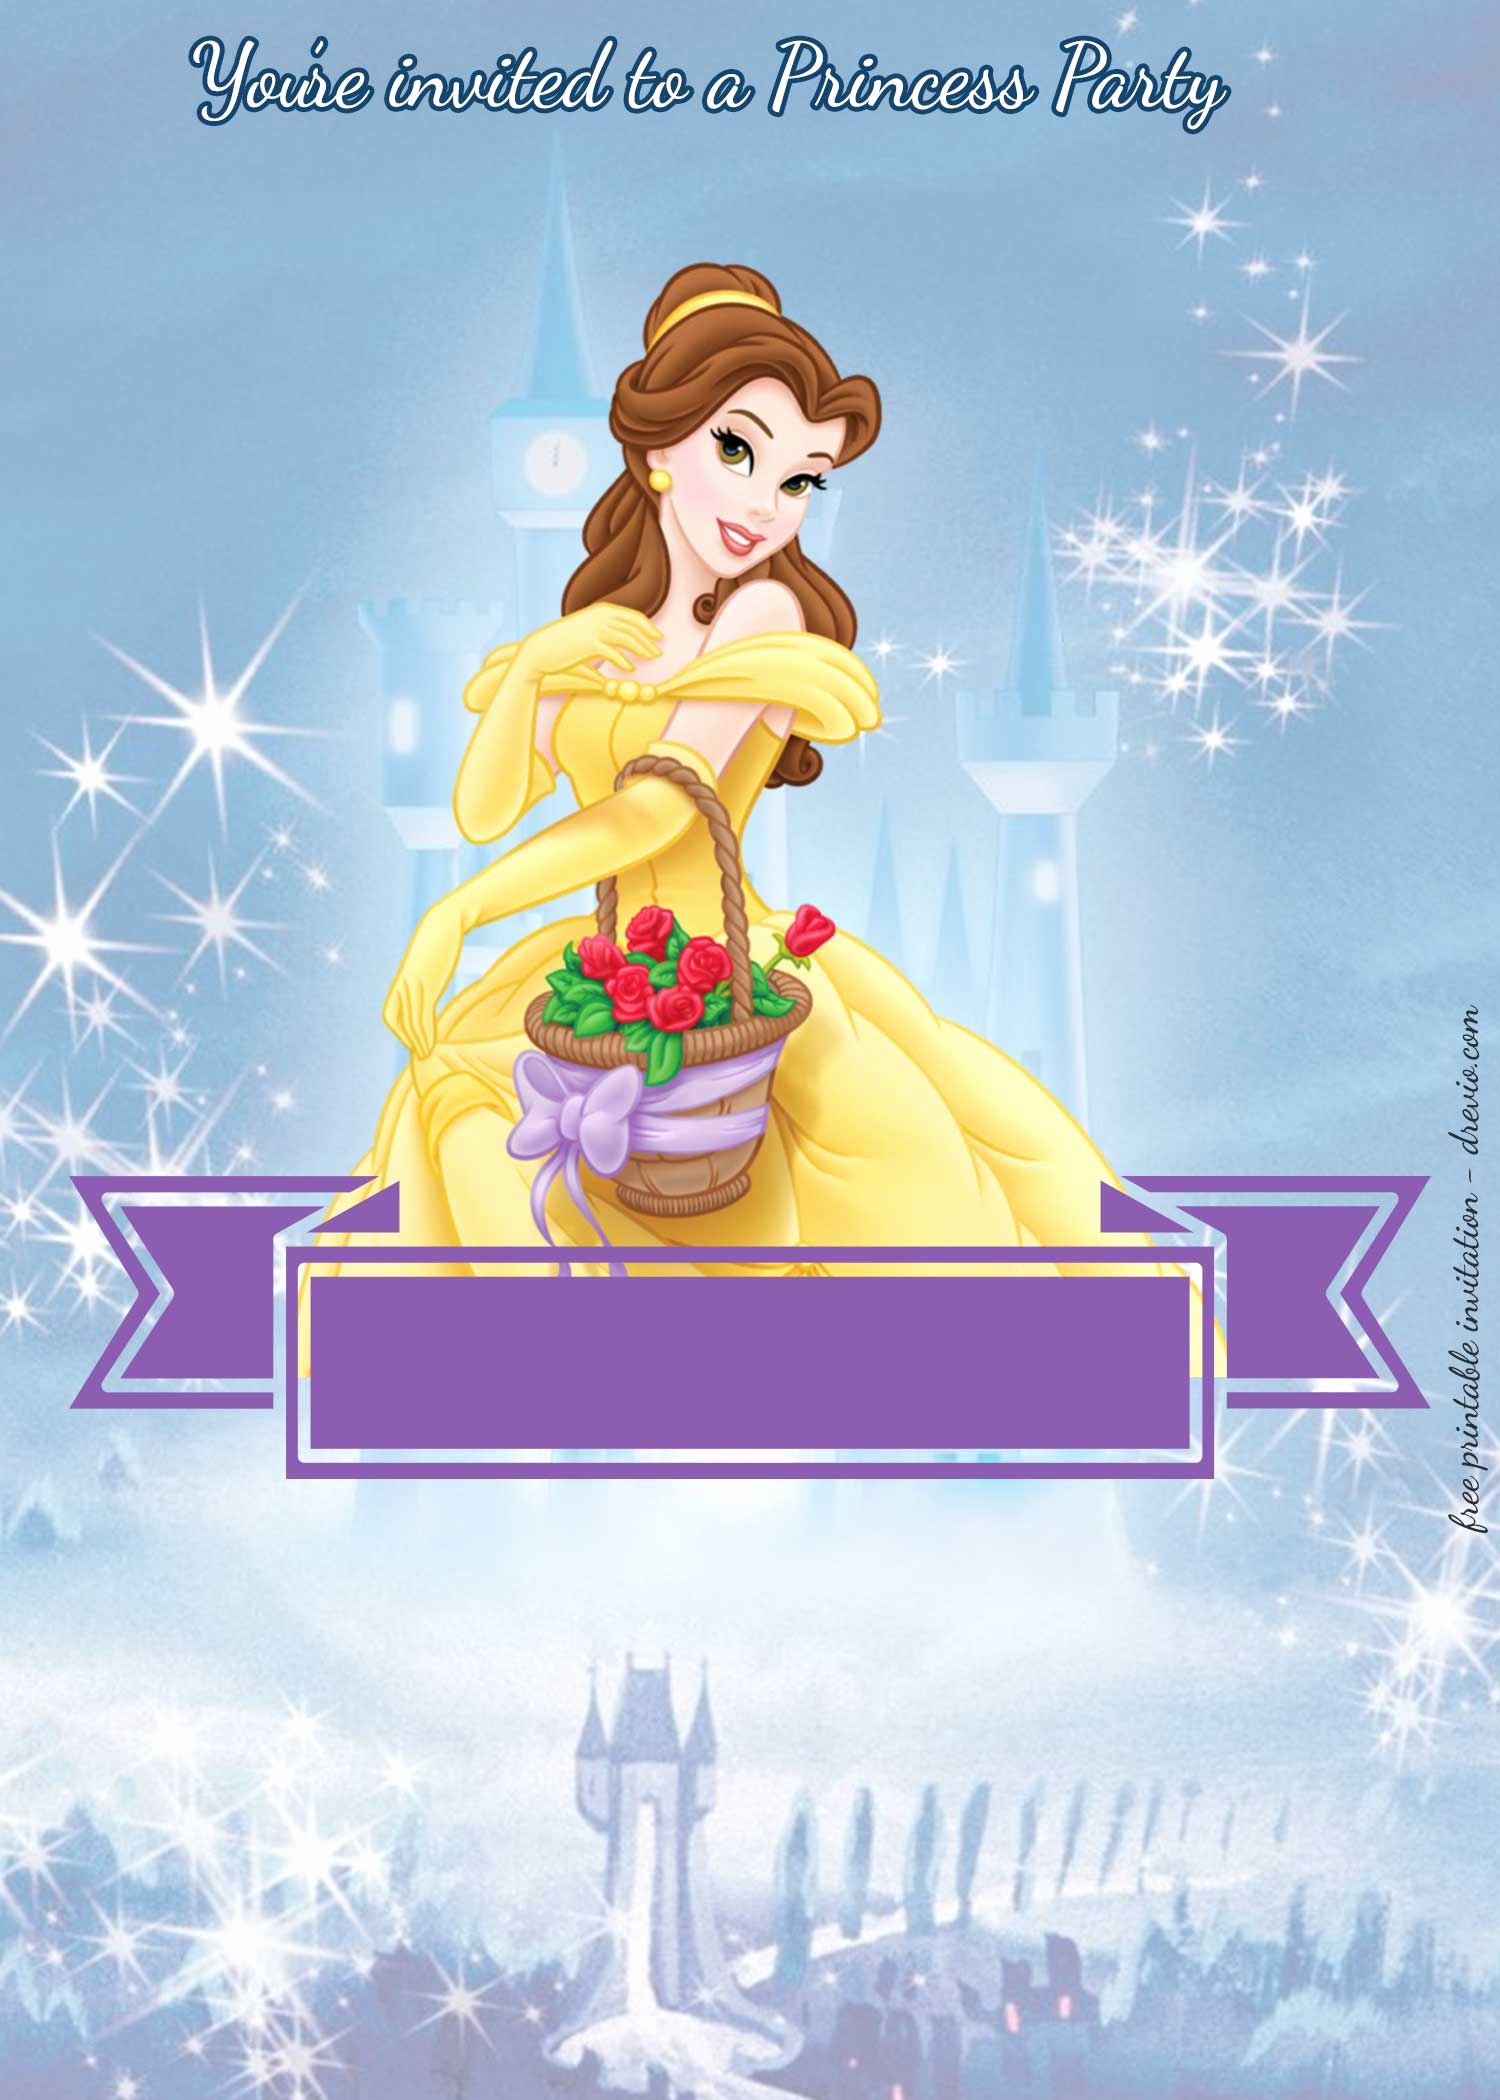 Disney Princess Invitation Template Fresh Free Disney Princesses Birthday Invitation Templates